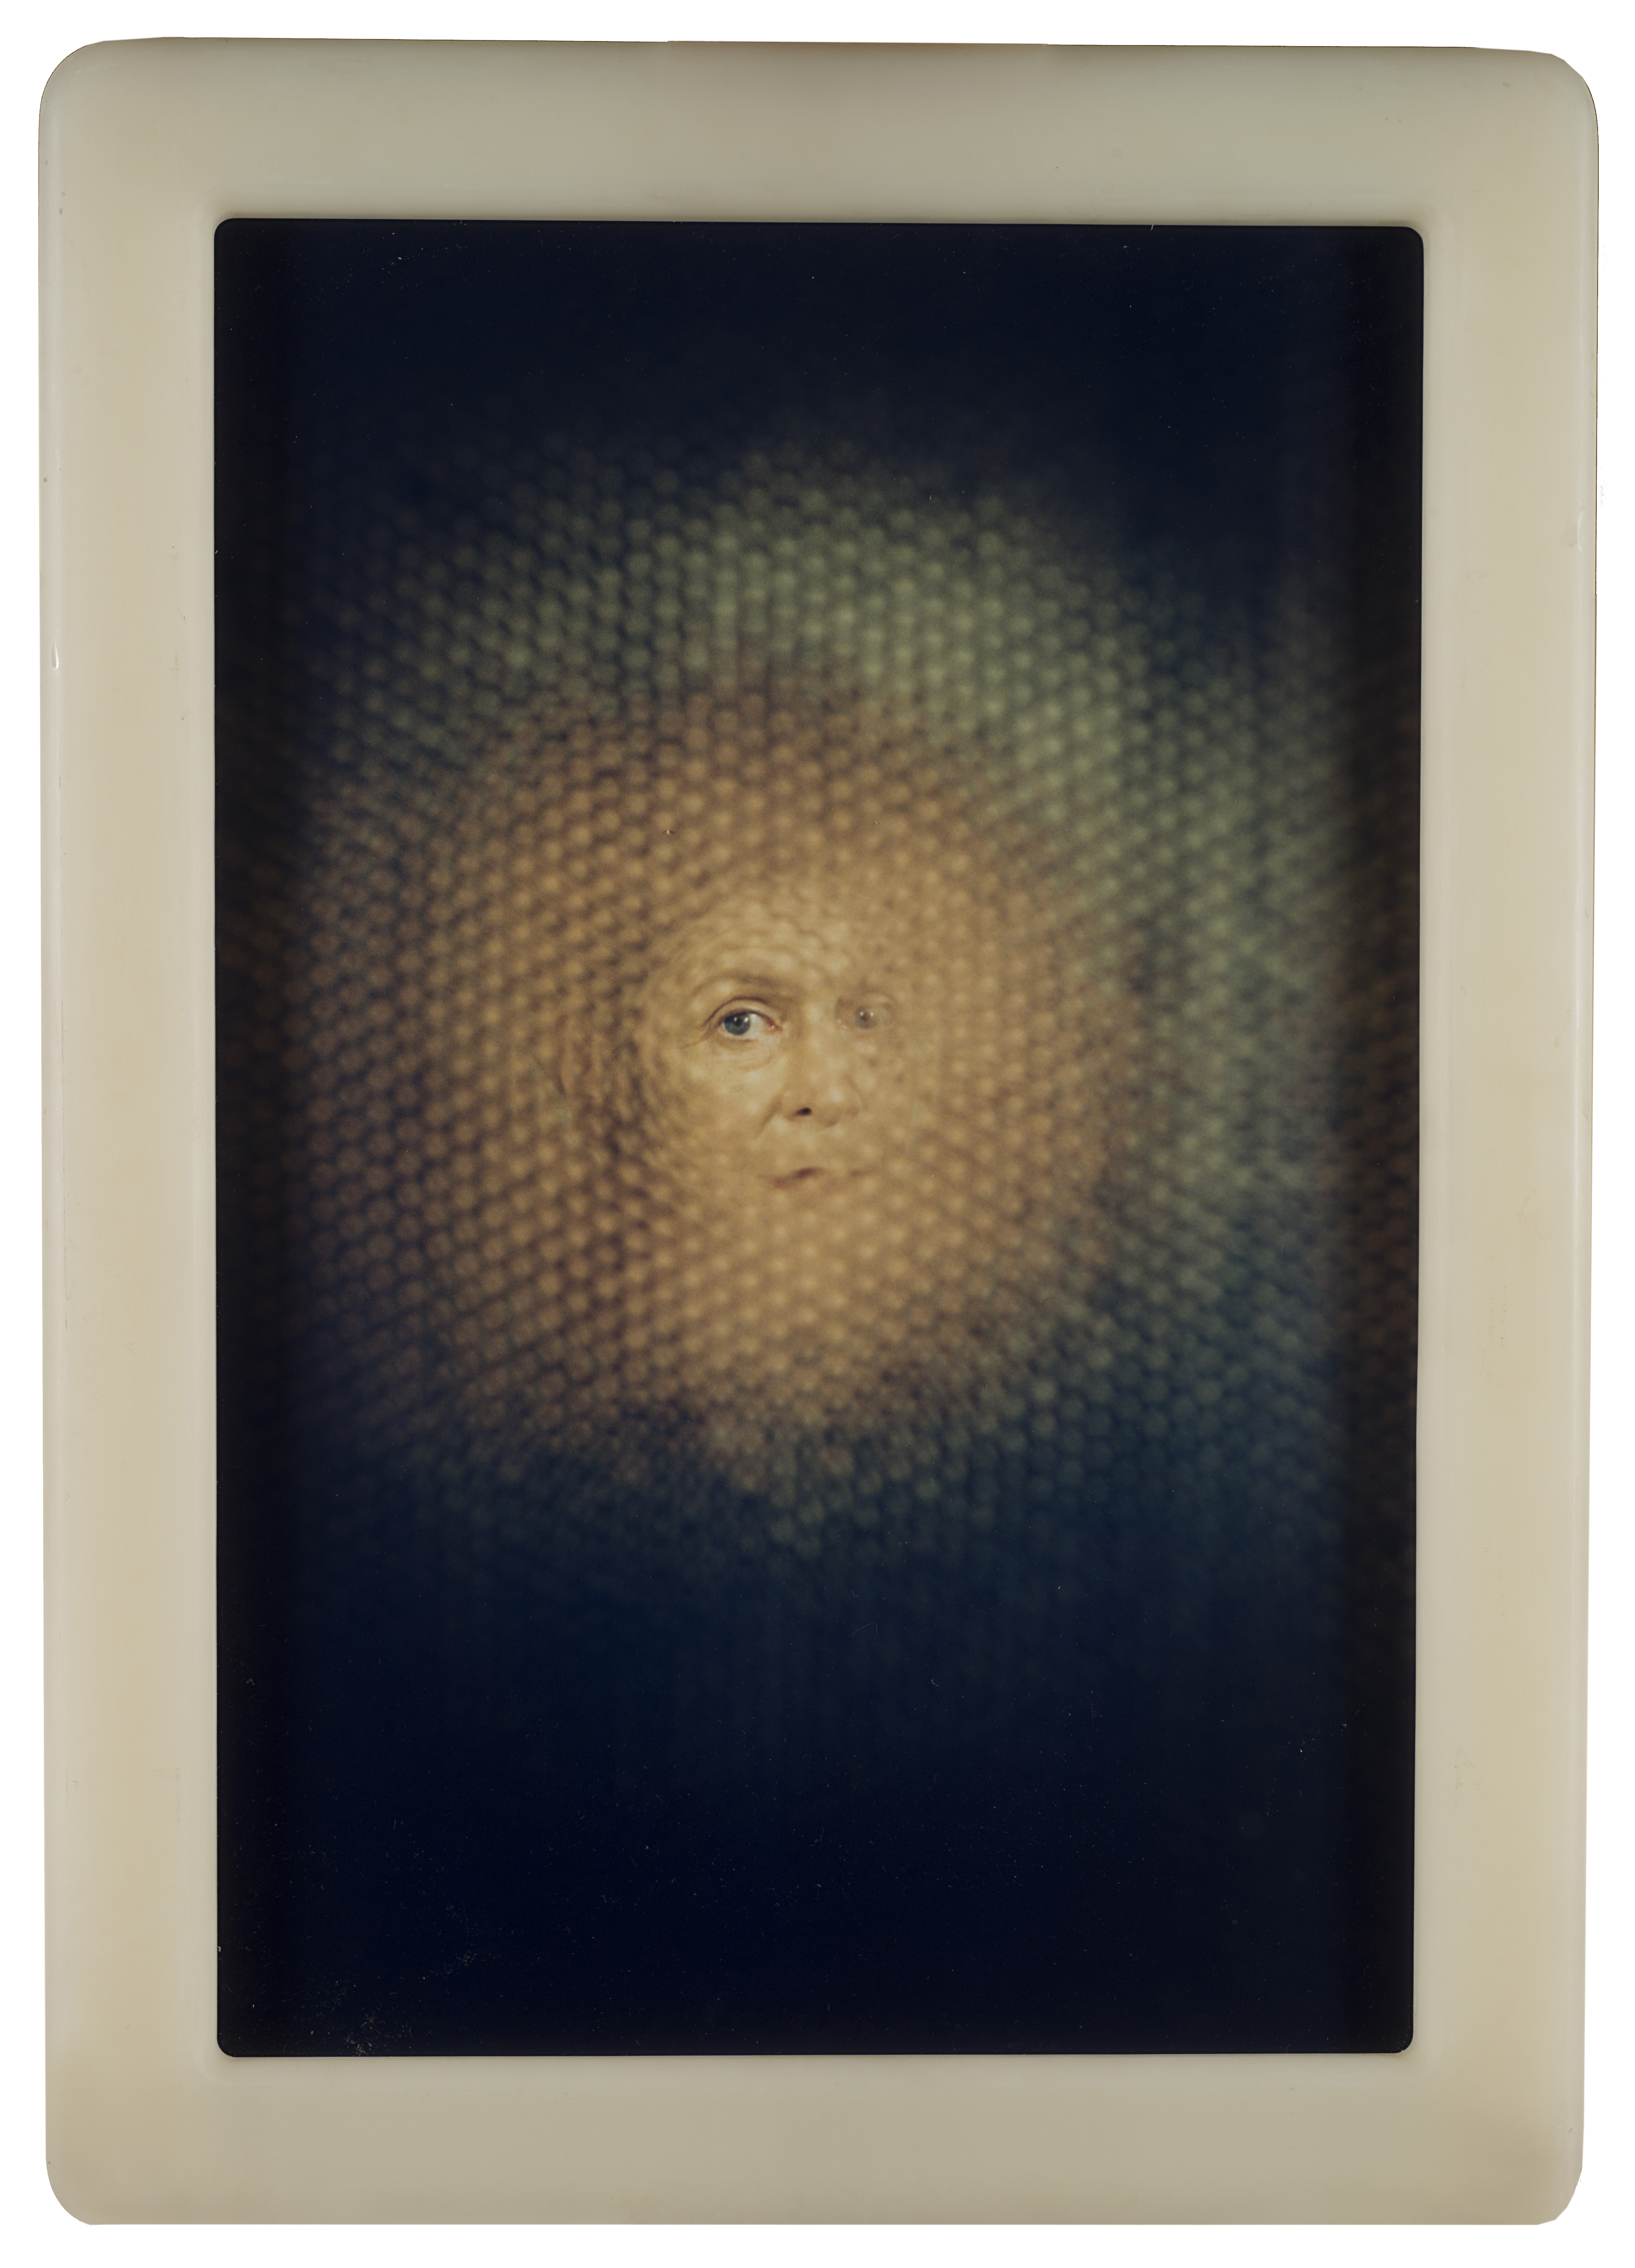 Cremaster 2: The Roytal Cell of Baby Fay, Matthew Barney. 1998, Vintage C-print in acrylic frame 59.5 x 39.5 cm. € 7,000 - 9,000. Photo: Finarte